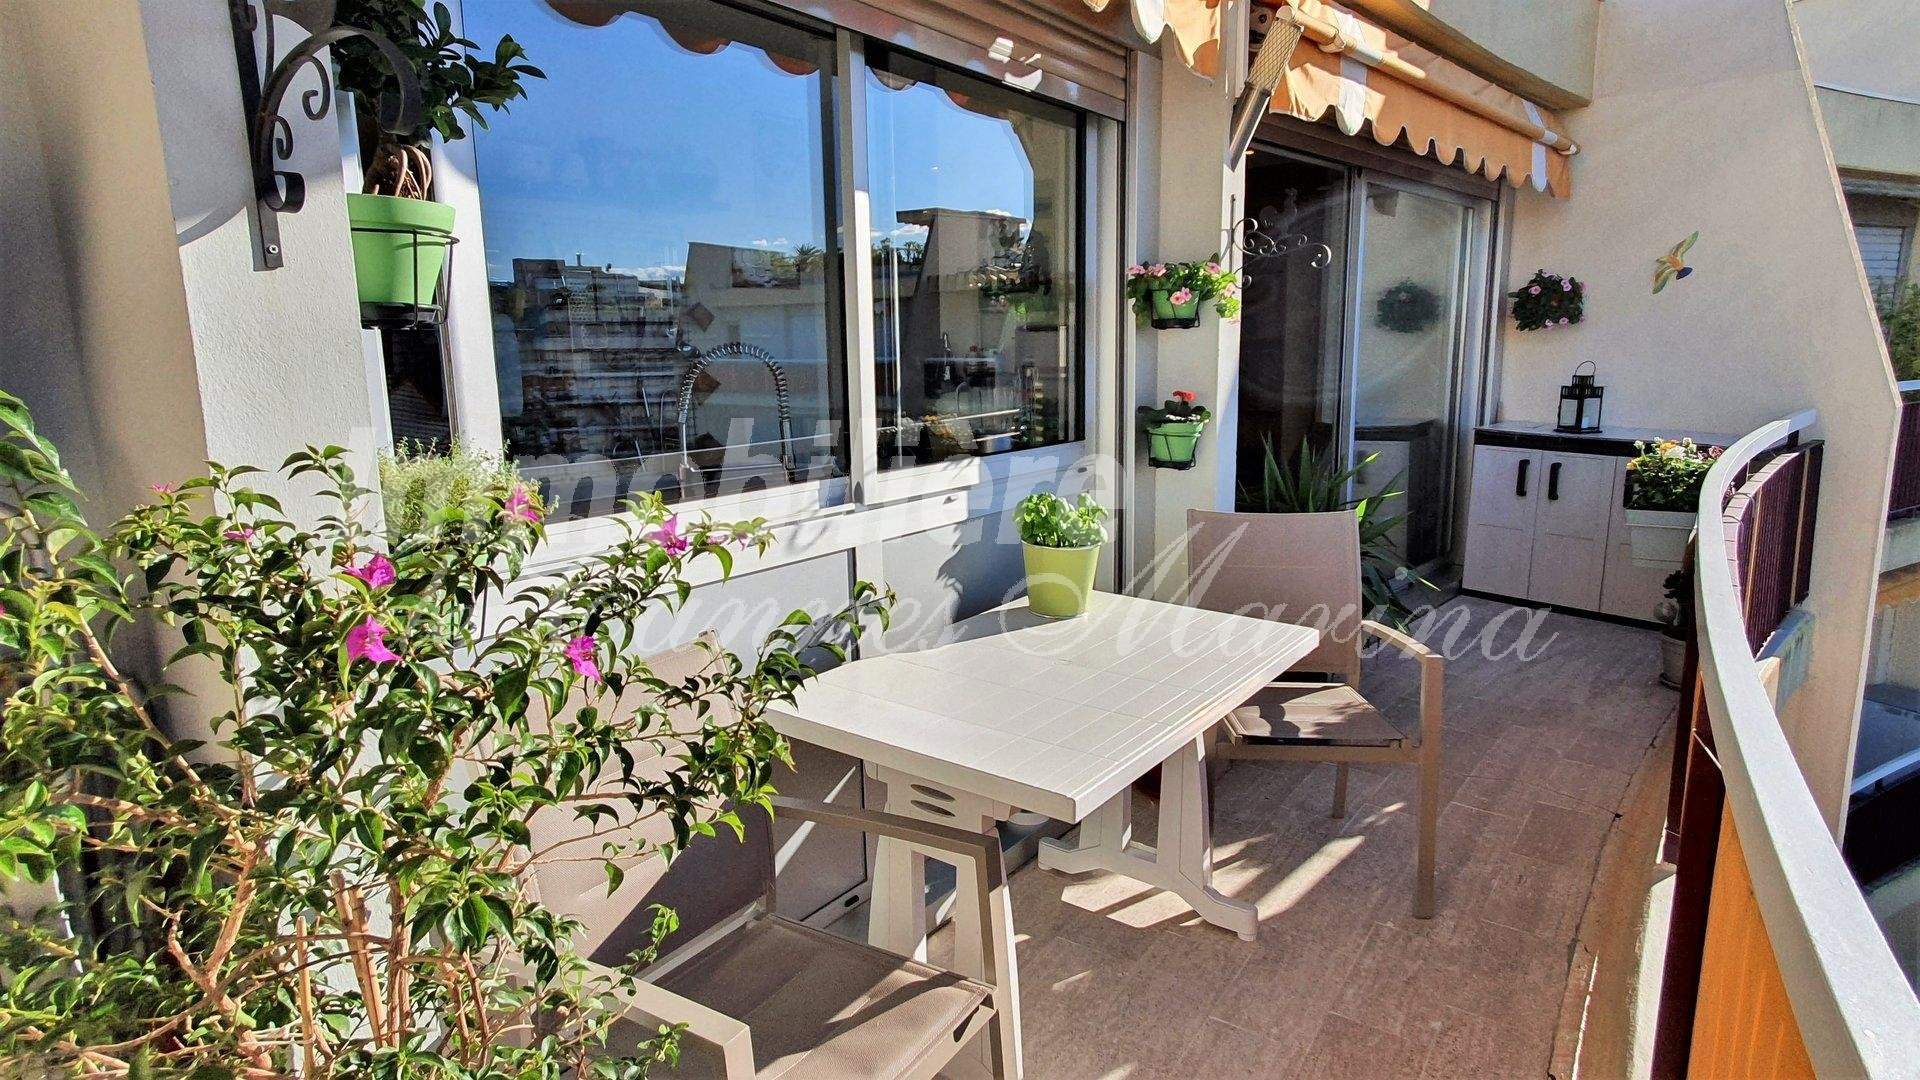 SUPERB STUDIO ENTIRELY RENOVATED - PARKING AND CELLAR - SWIMMING POOL